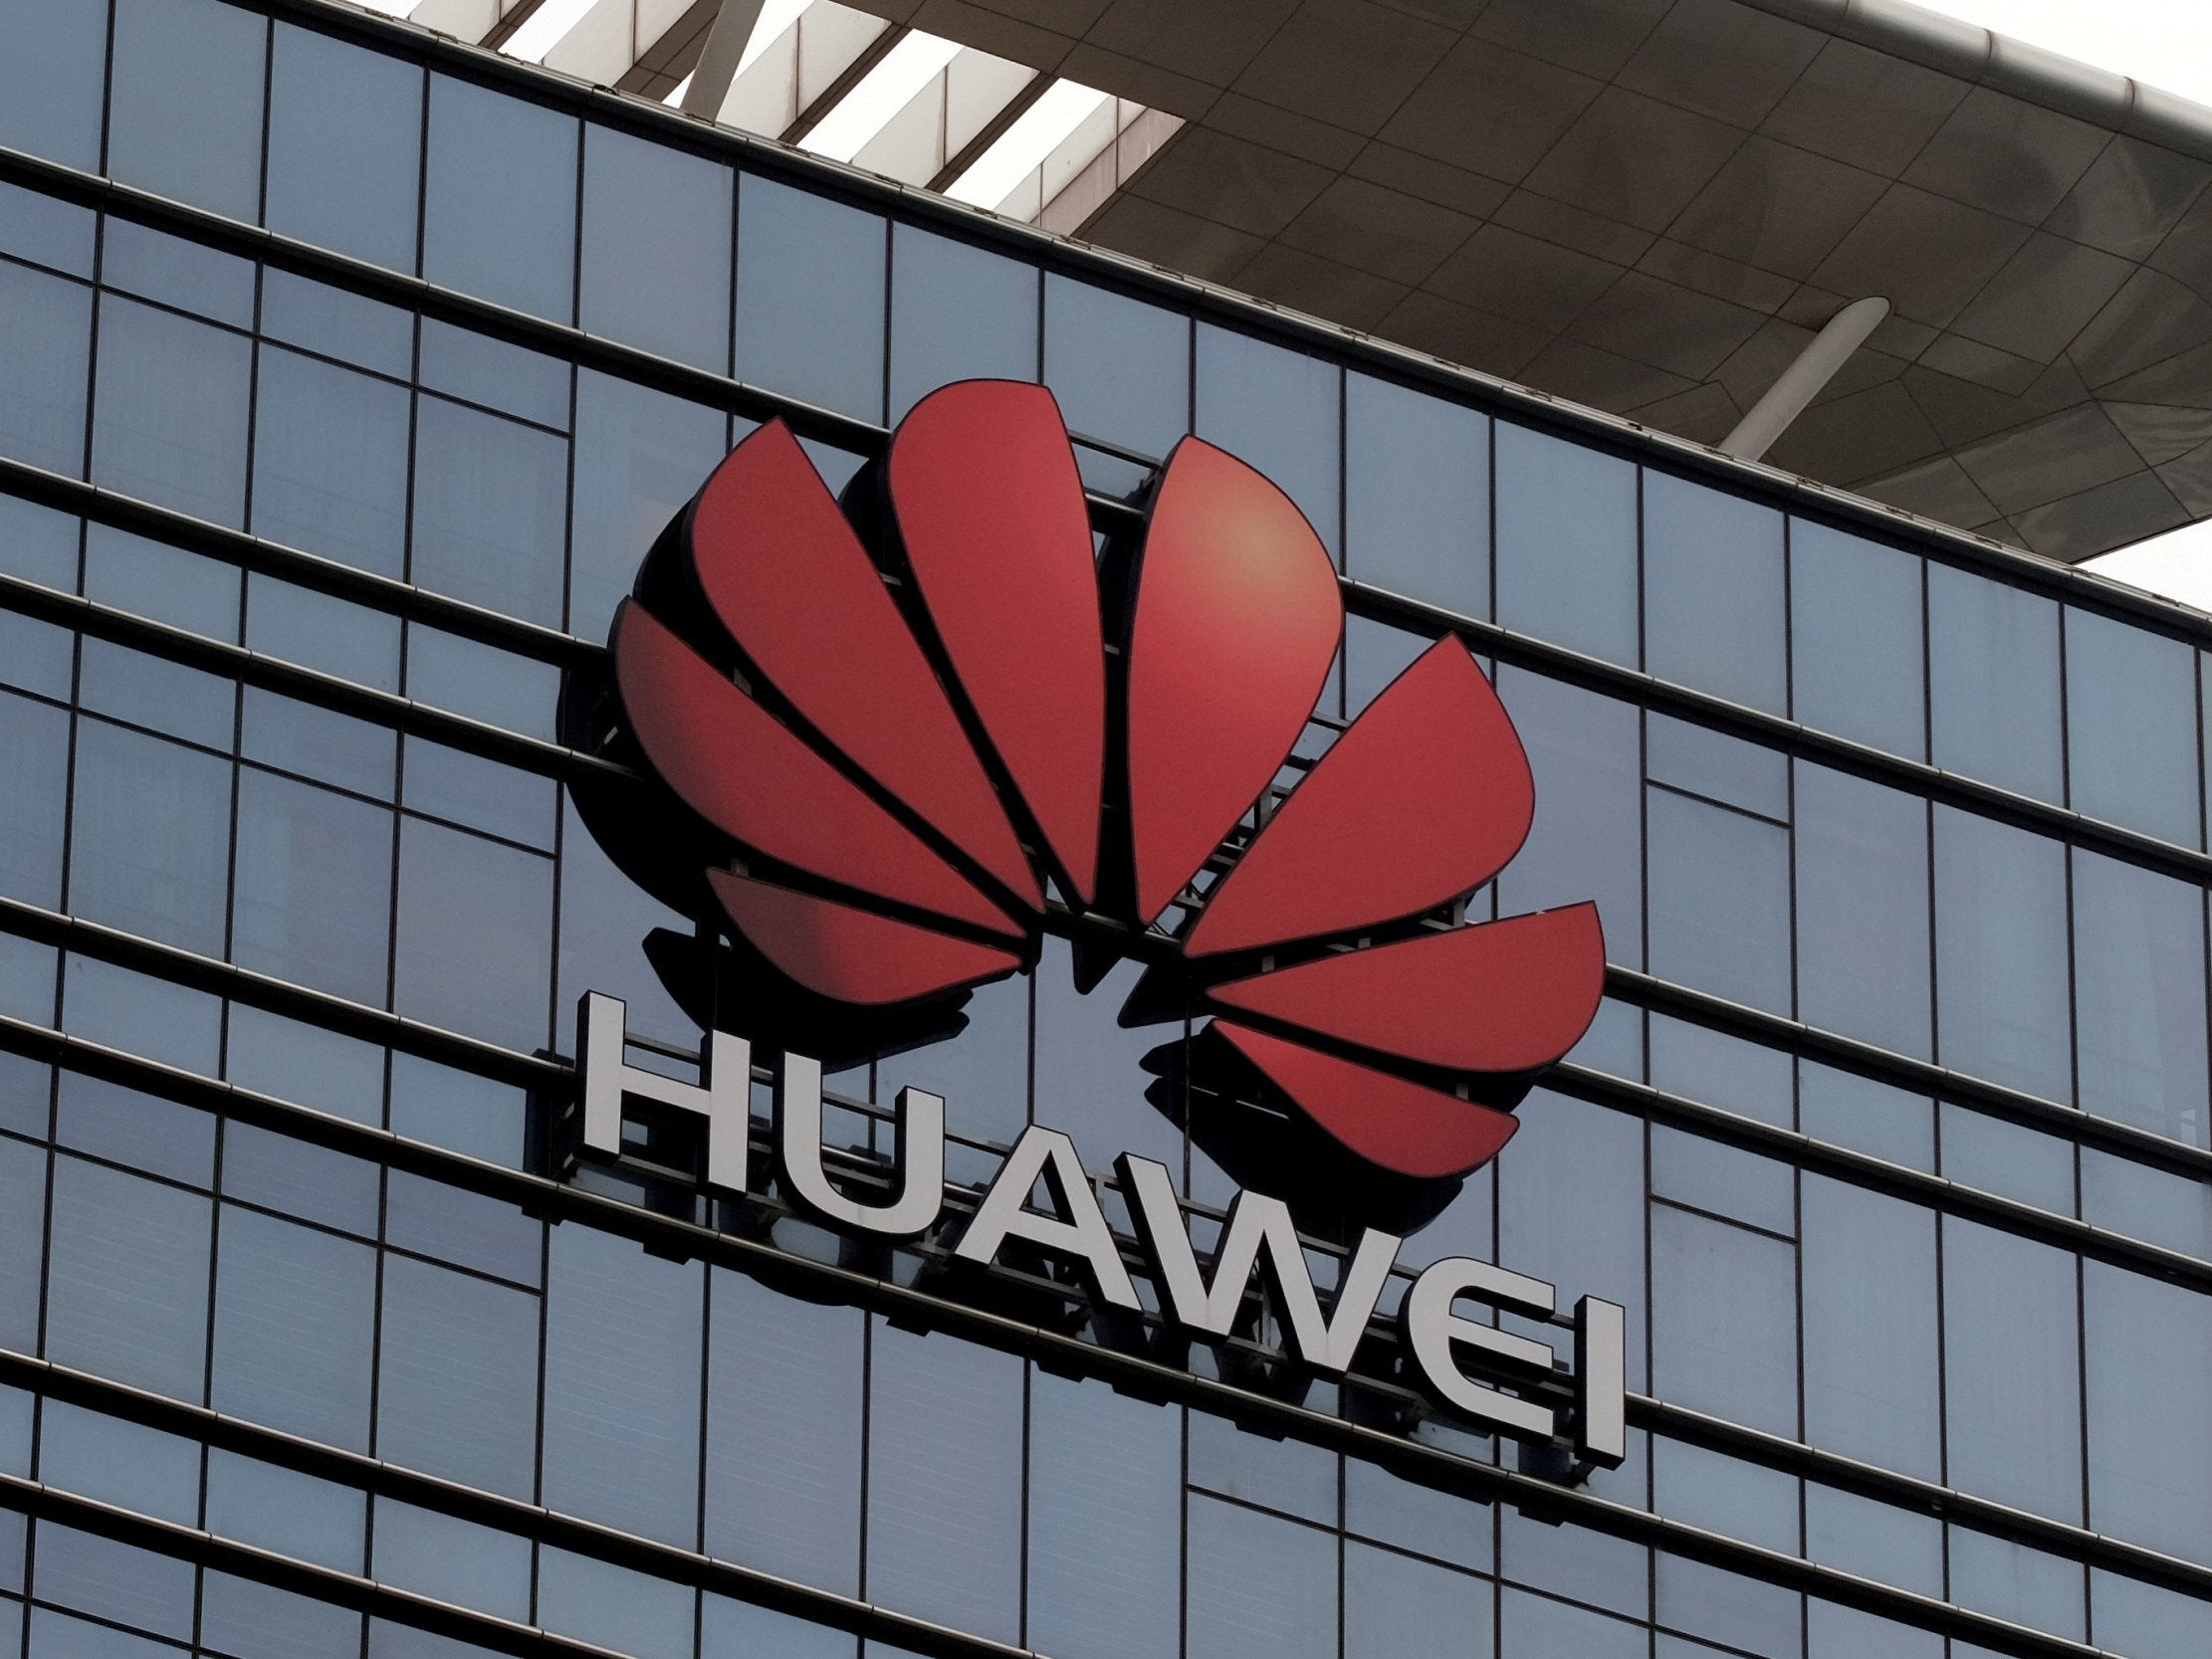 Huawei has secret 'backdoor' into major European telecoms firm, spy agency reportedly says